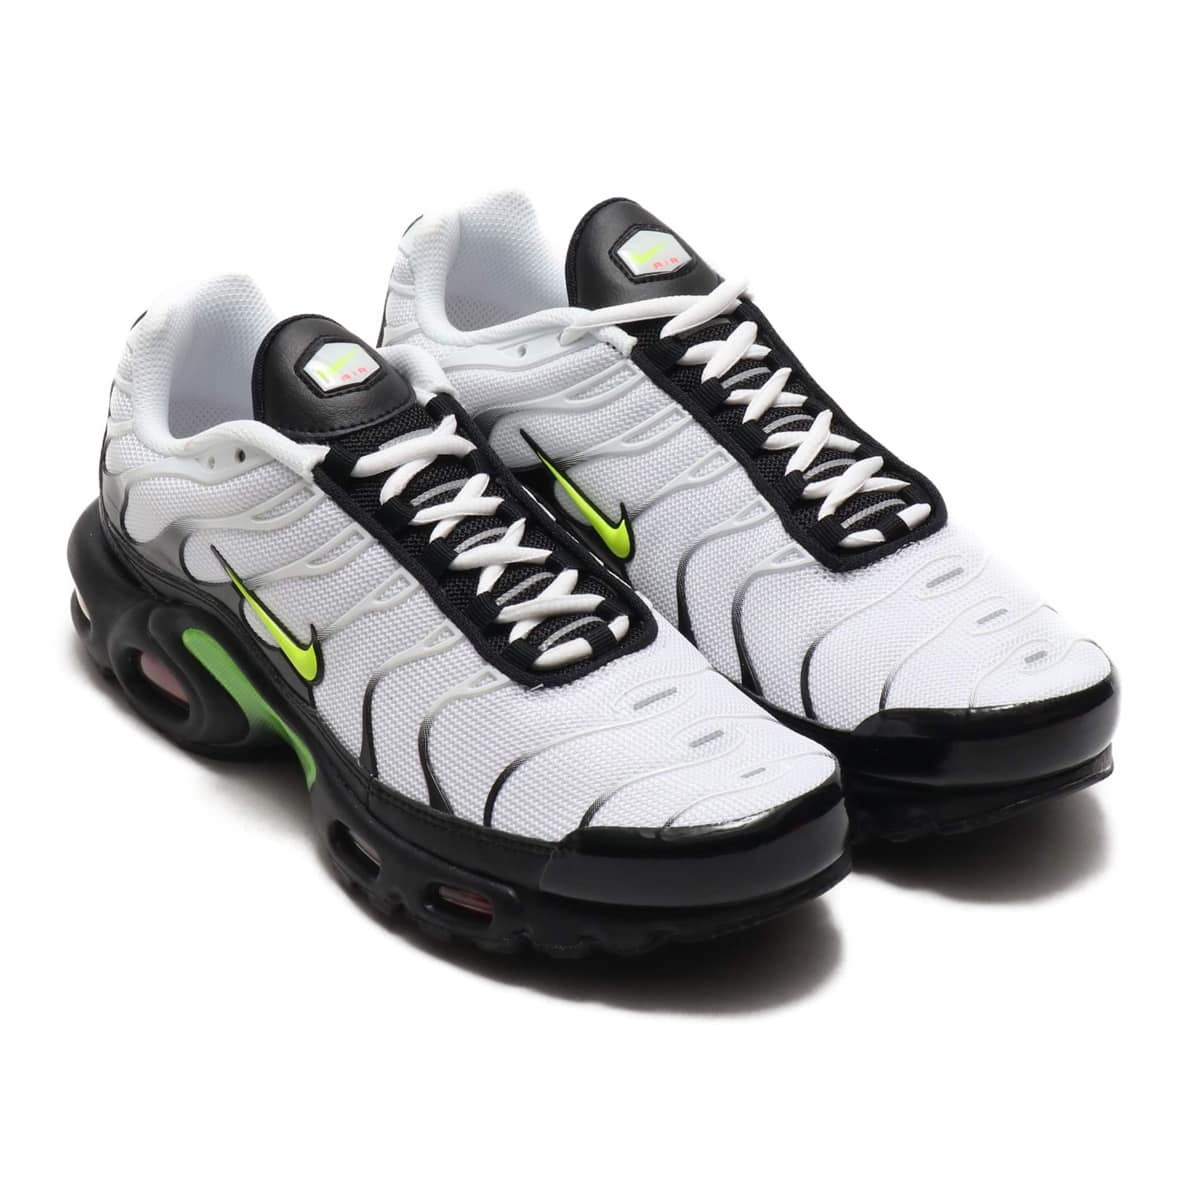 NIKE AIR MAX PLUS SE WHITE/VOLT-BLACK-BRT CRIMSON 19SU-I_photo_large